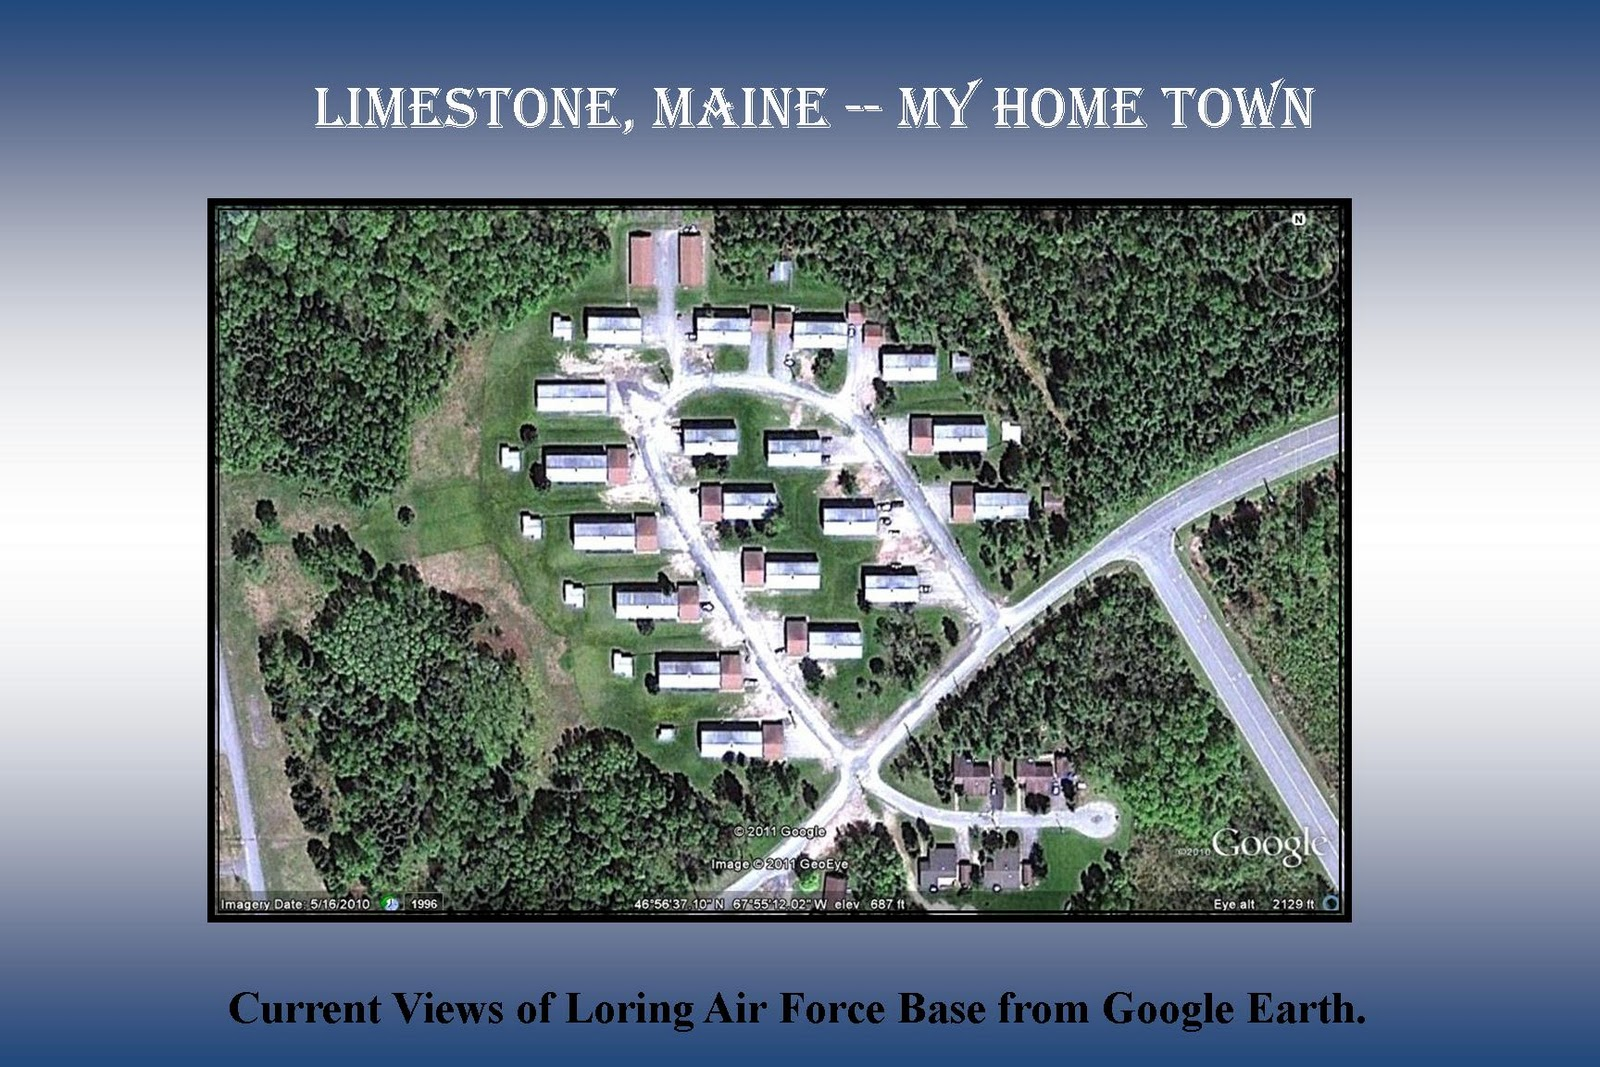 limestone loring afb guys Loring afb ski area limestone, me dates of operation unknown thanks to missmerlot for pointing us to this lost area there was an area on loring afb in limestone, maine.